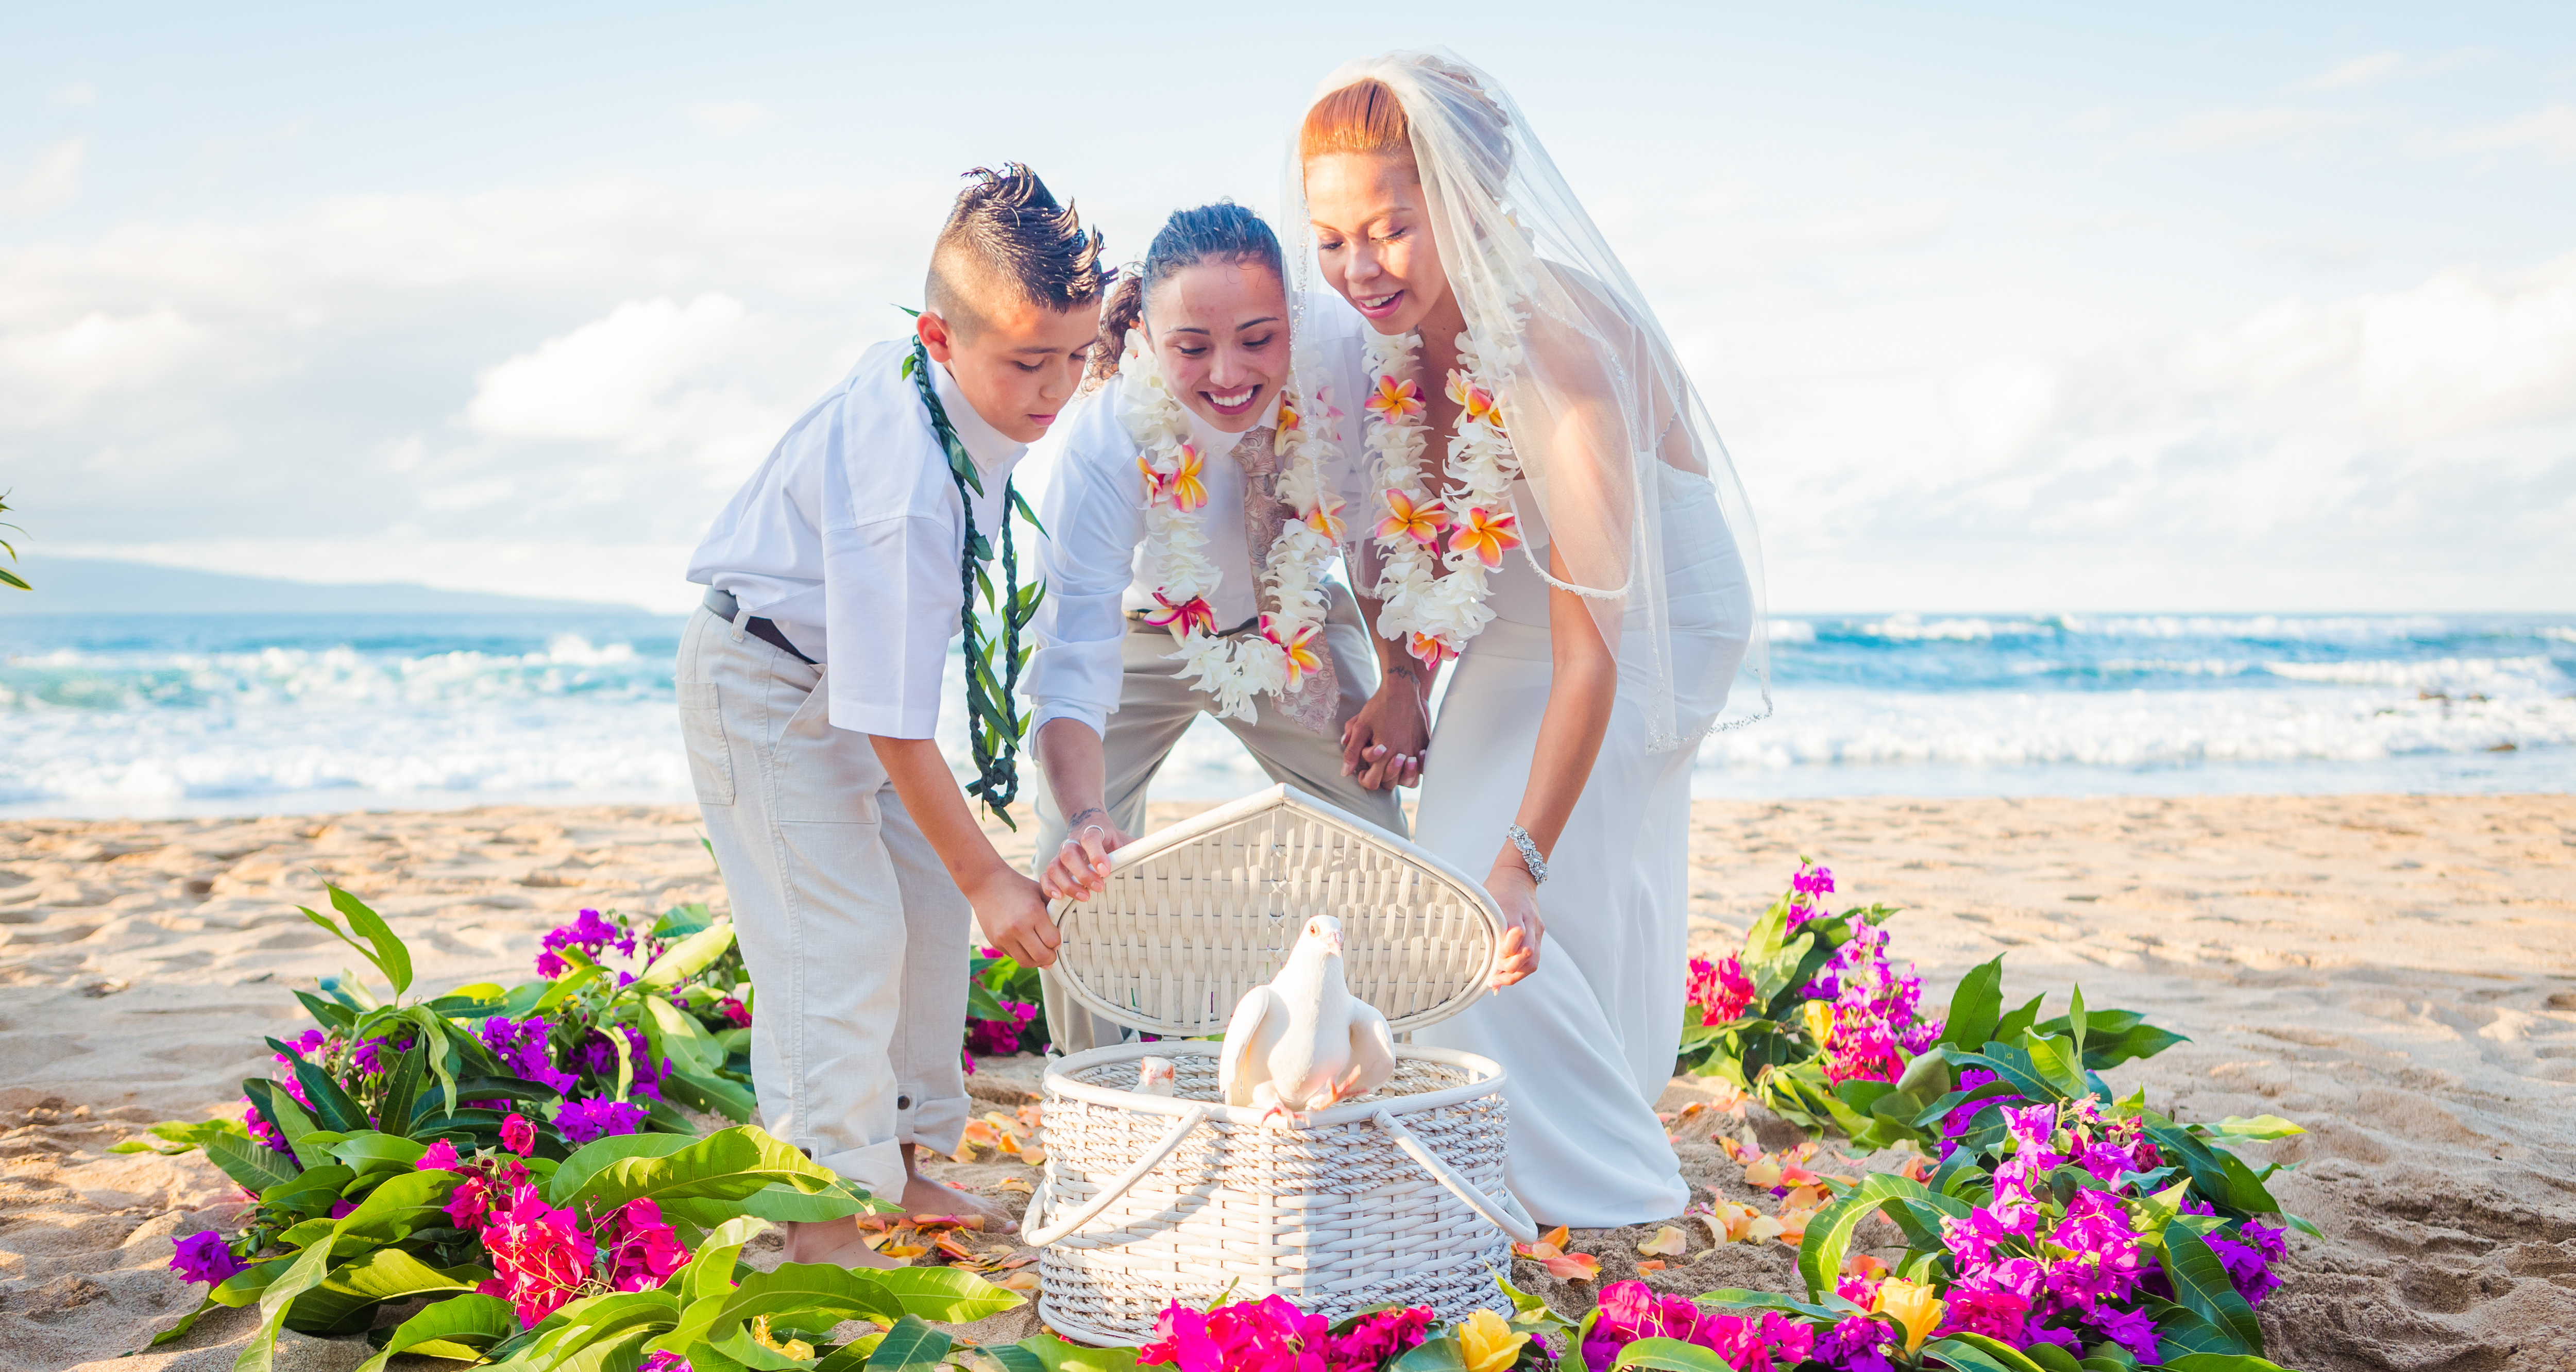 Islands For Gay And Lesbian Weddings